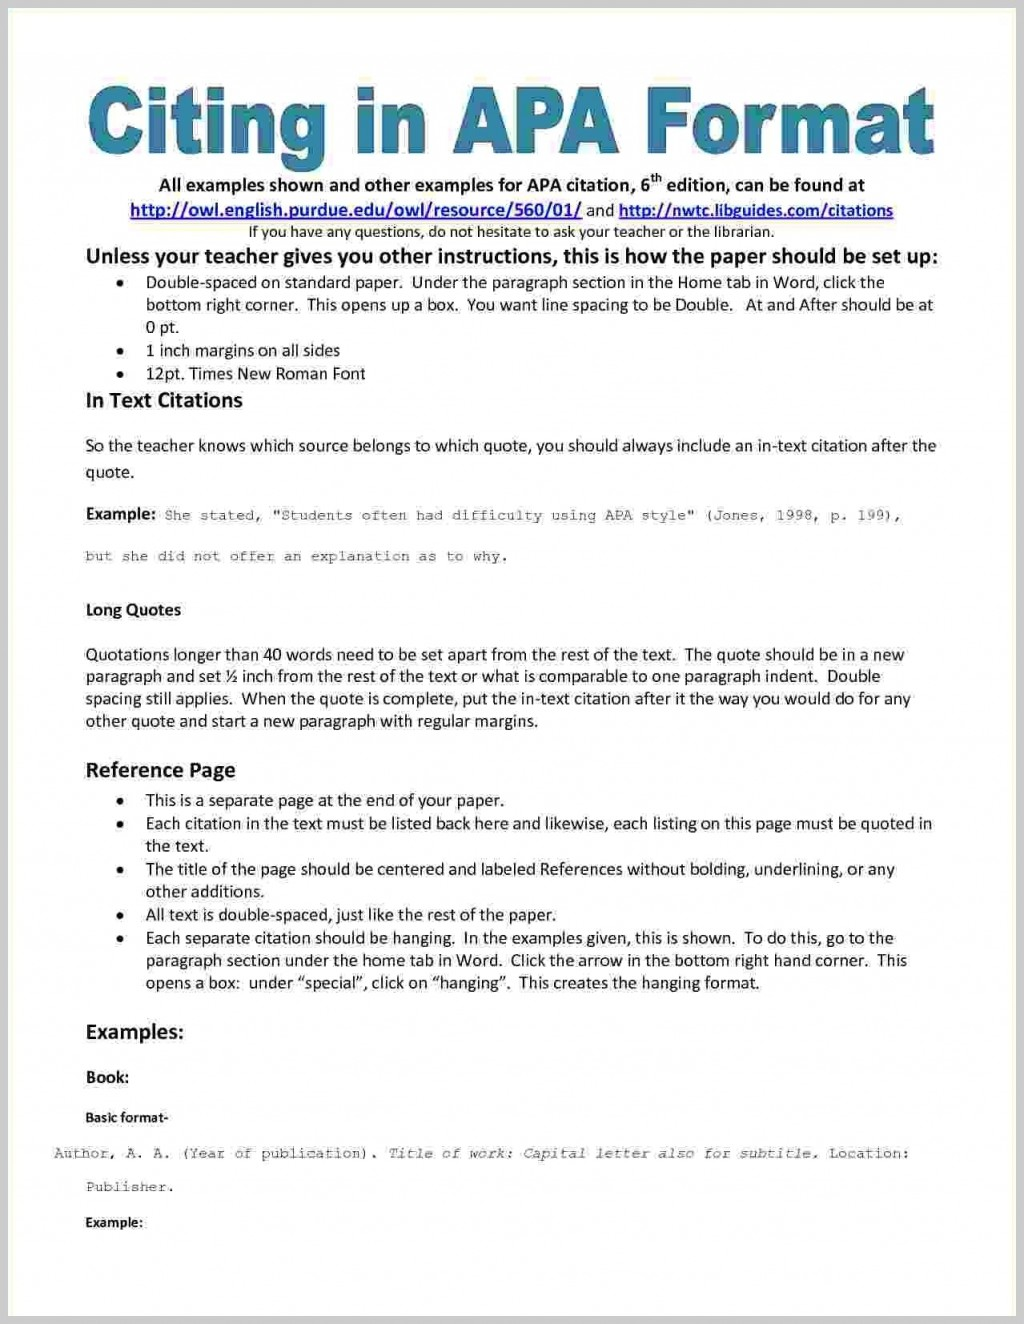 003 Research Paper Database Papers Apa Style Reference In Text Citation Mla Examples Toreto Co Stirring Pdf Online Distributed Large